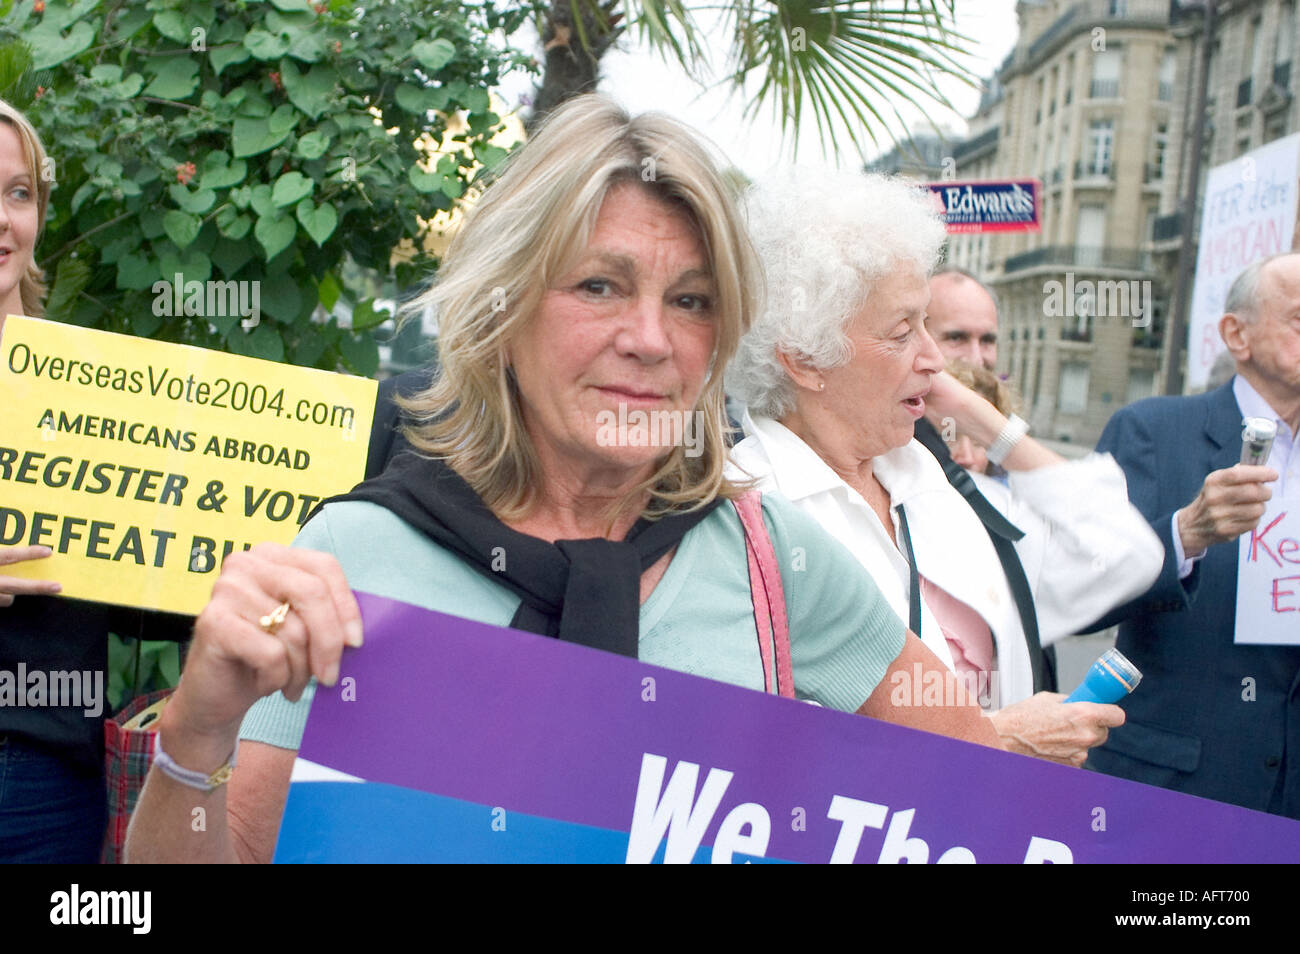 Paris FRANCE, Senior Activist in Anti-War Demonstration by American Ex patriots Dems Abroad, NGO, Association 'Connie Borde' - Stock Image